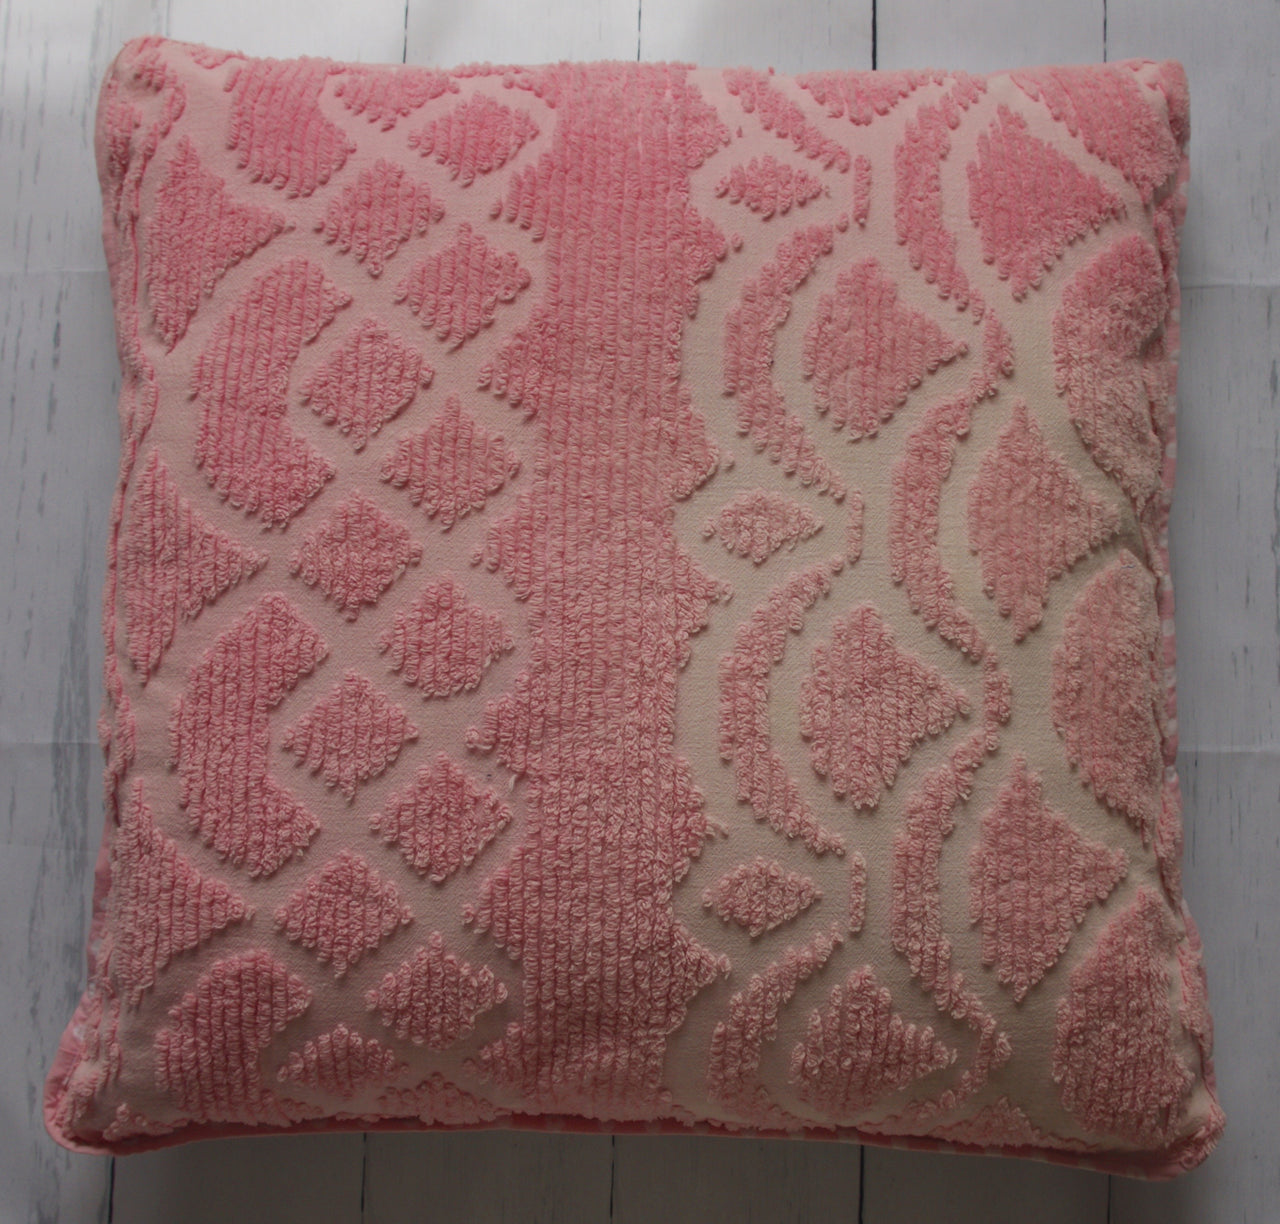 eco-friendly-sustainable-repurposed-handmade-floor-pillow-vintage-pink-chenille-floral-front